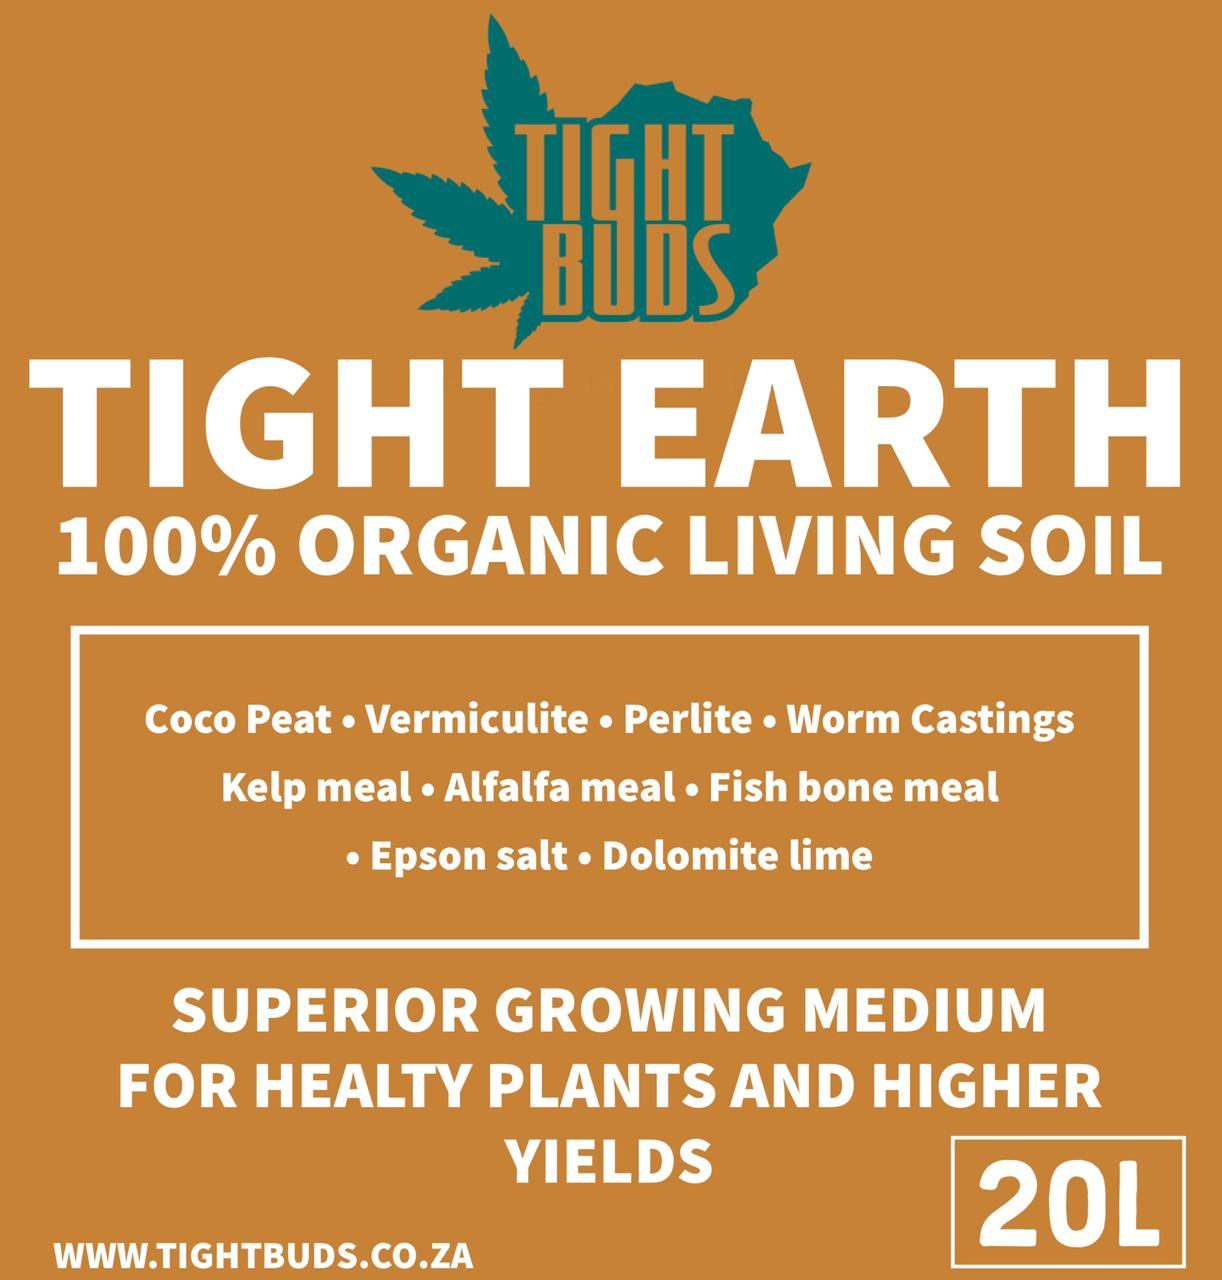 TIGHT EARTH  - 100% Organic Living Soil